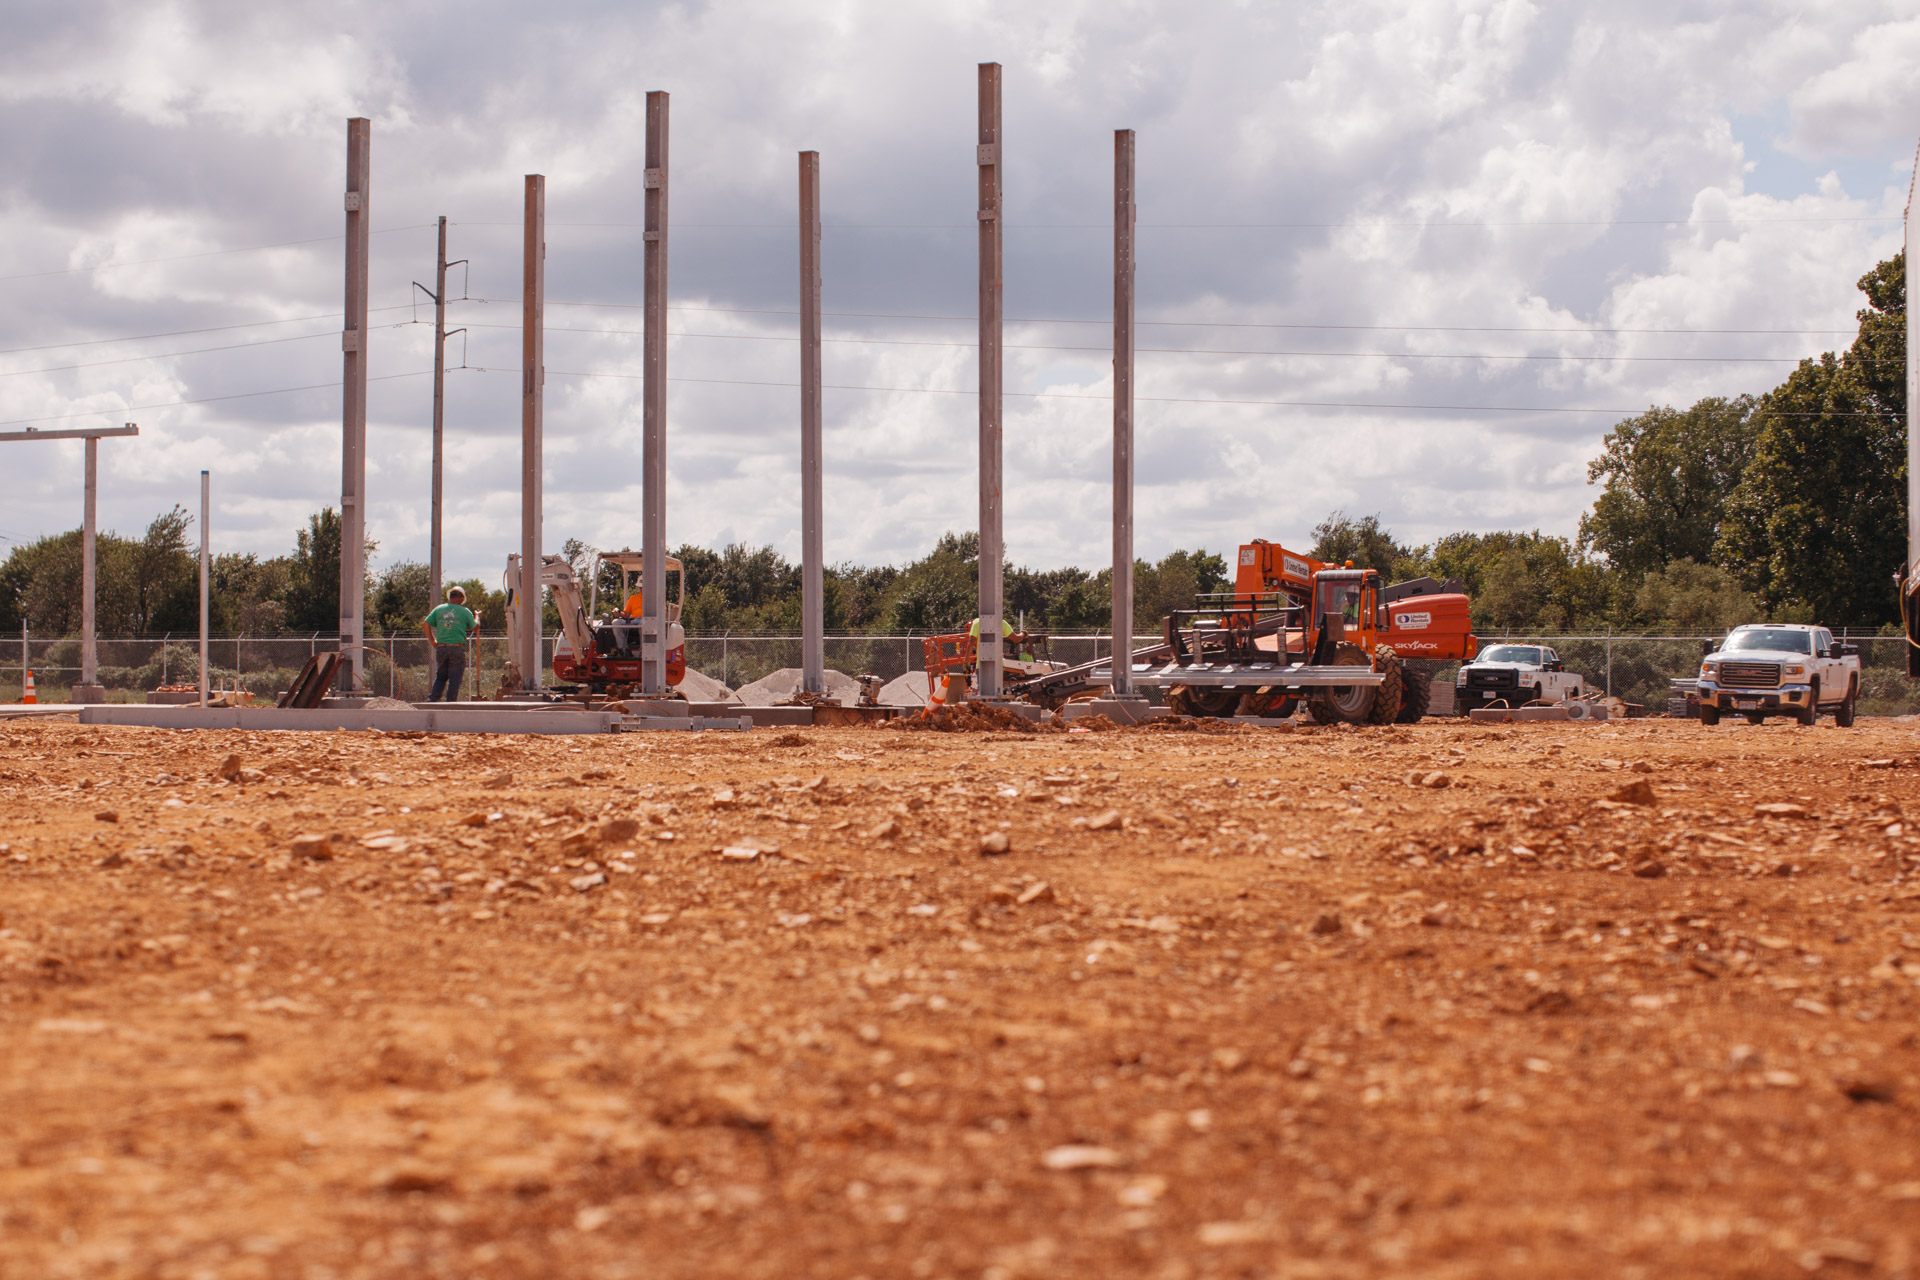 Image of Empire Substation construction site in Joplin, MO.